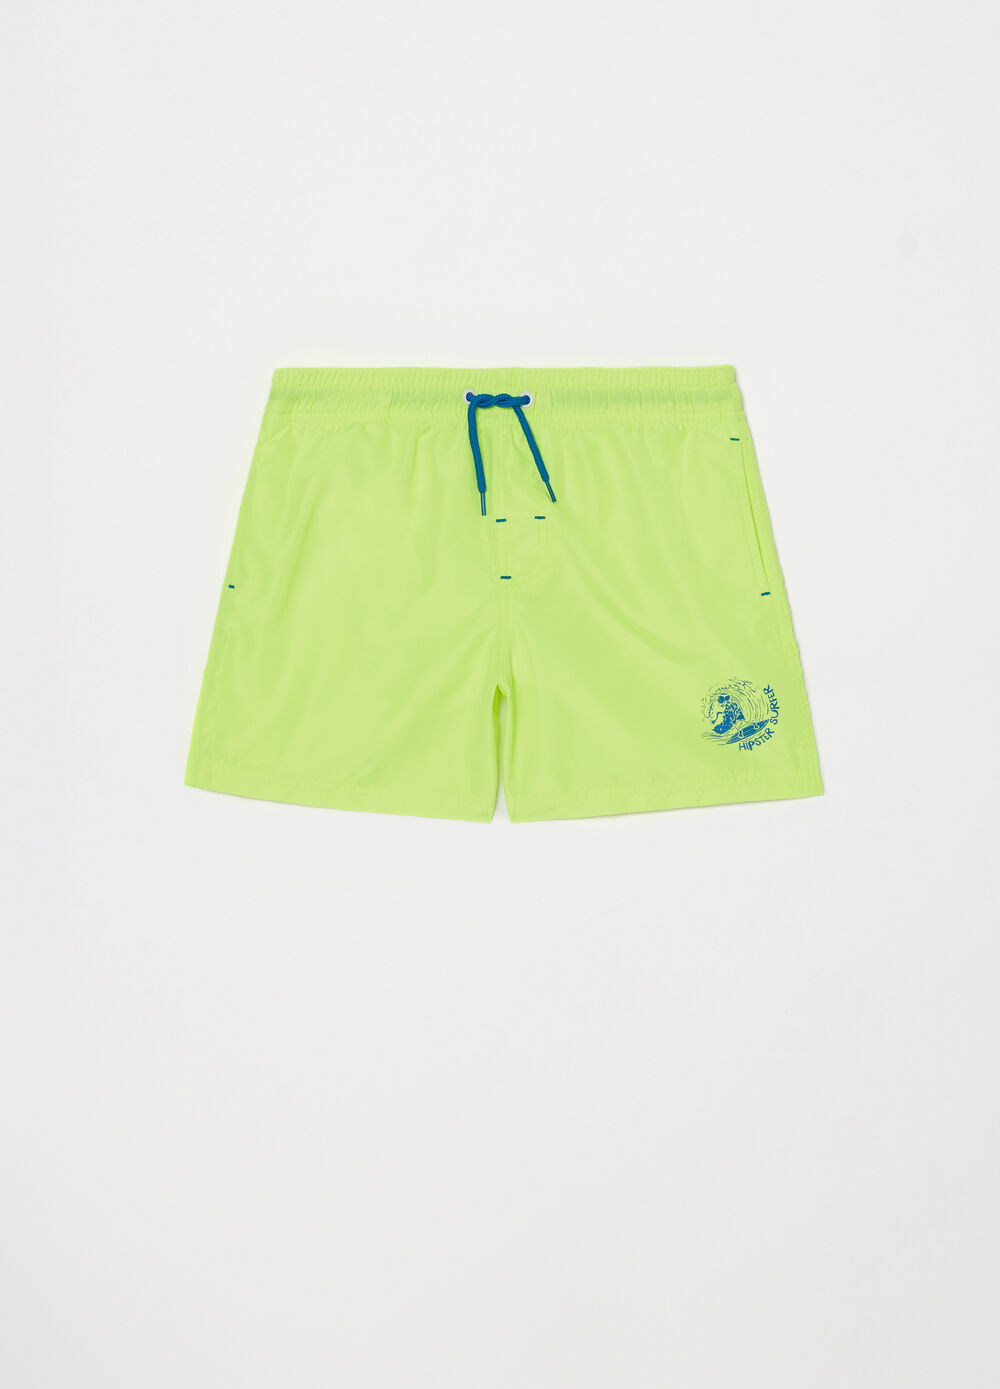 Beach shorts with pockets, drawstring and print